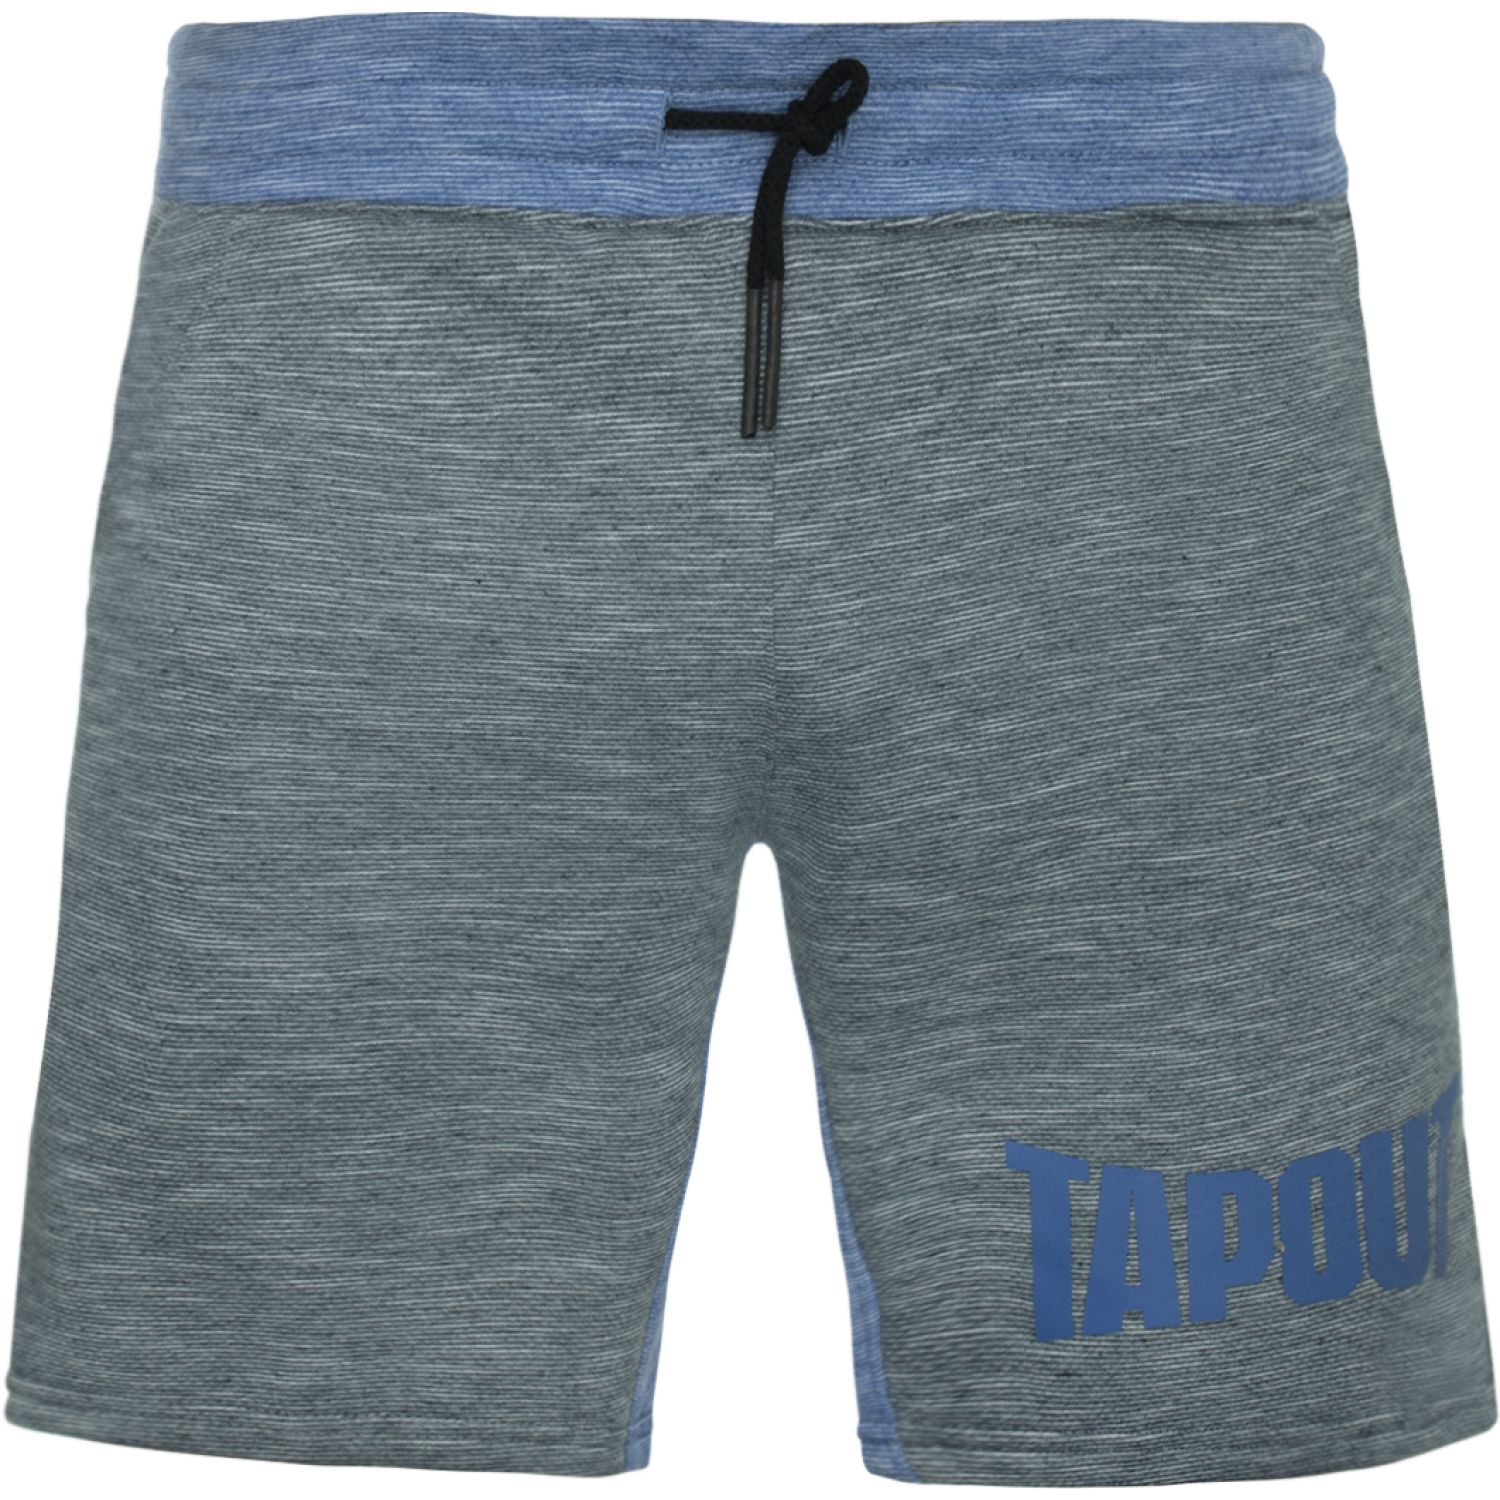 TAPOUT Short Wor Acero Cargo